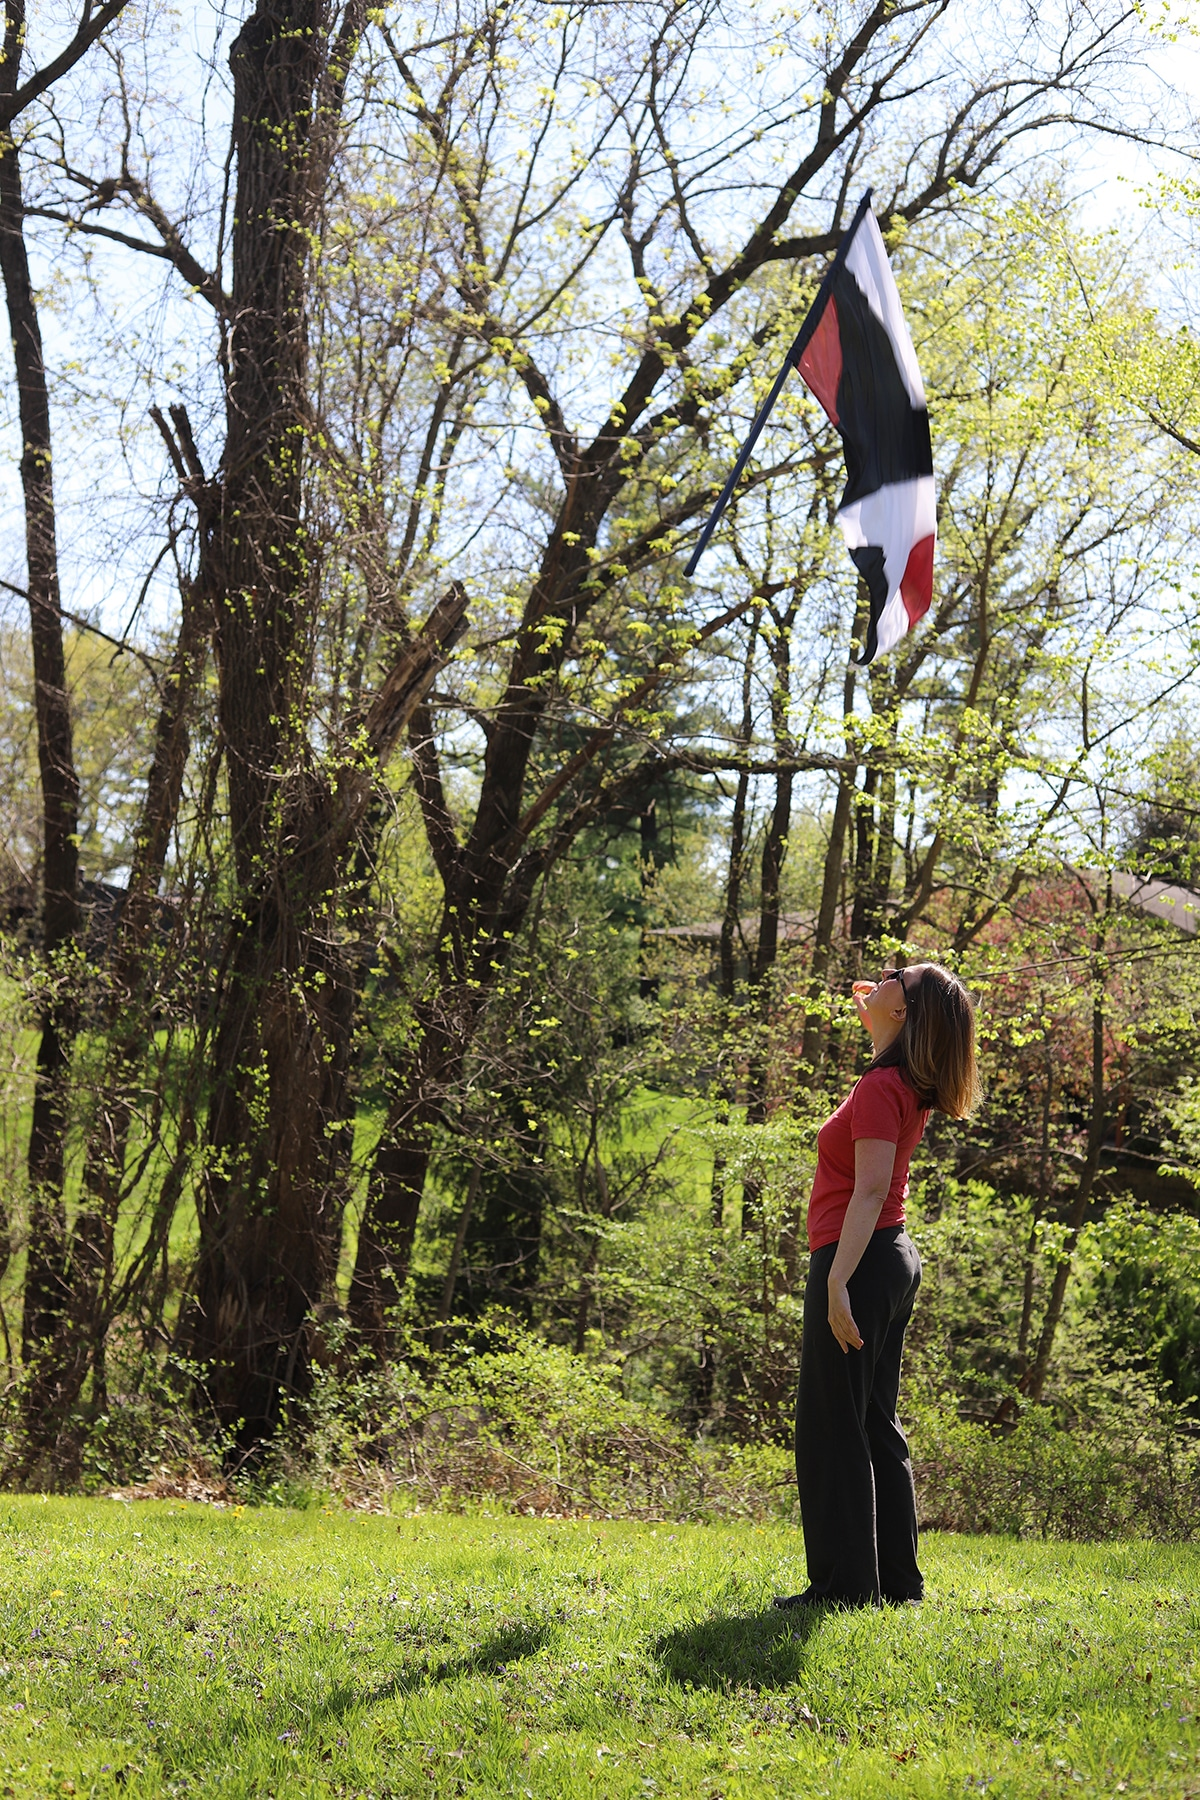 Cadry tossing Color Guard flag in yard.